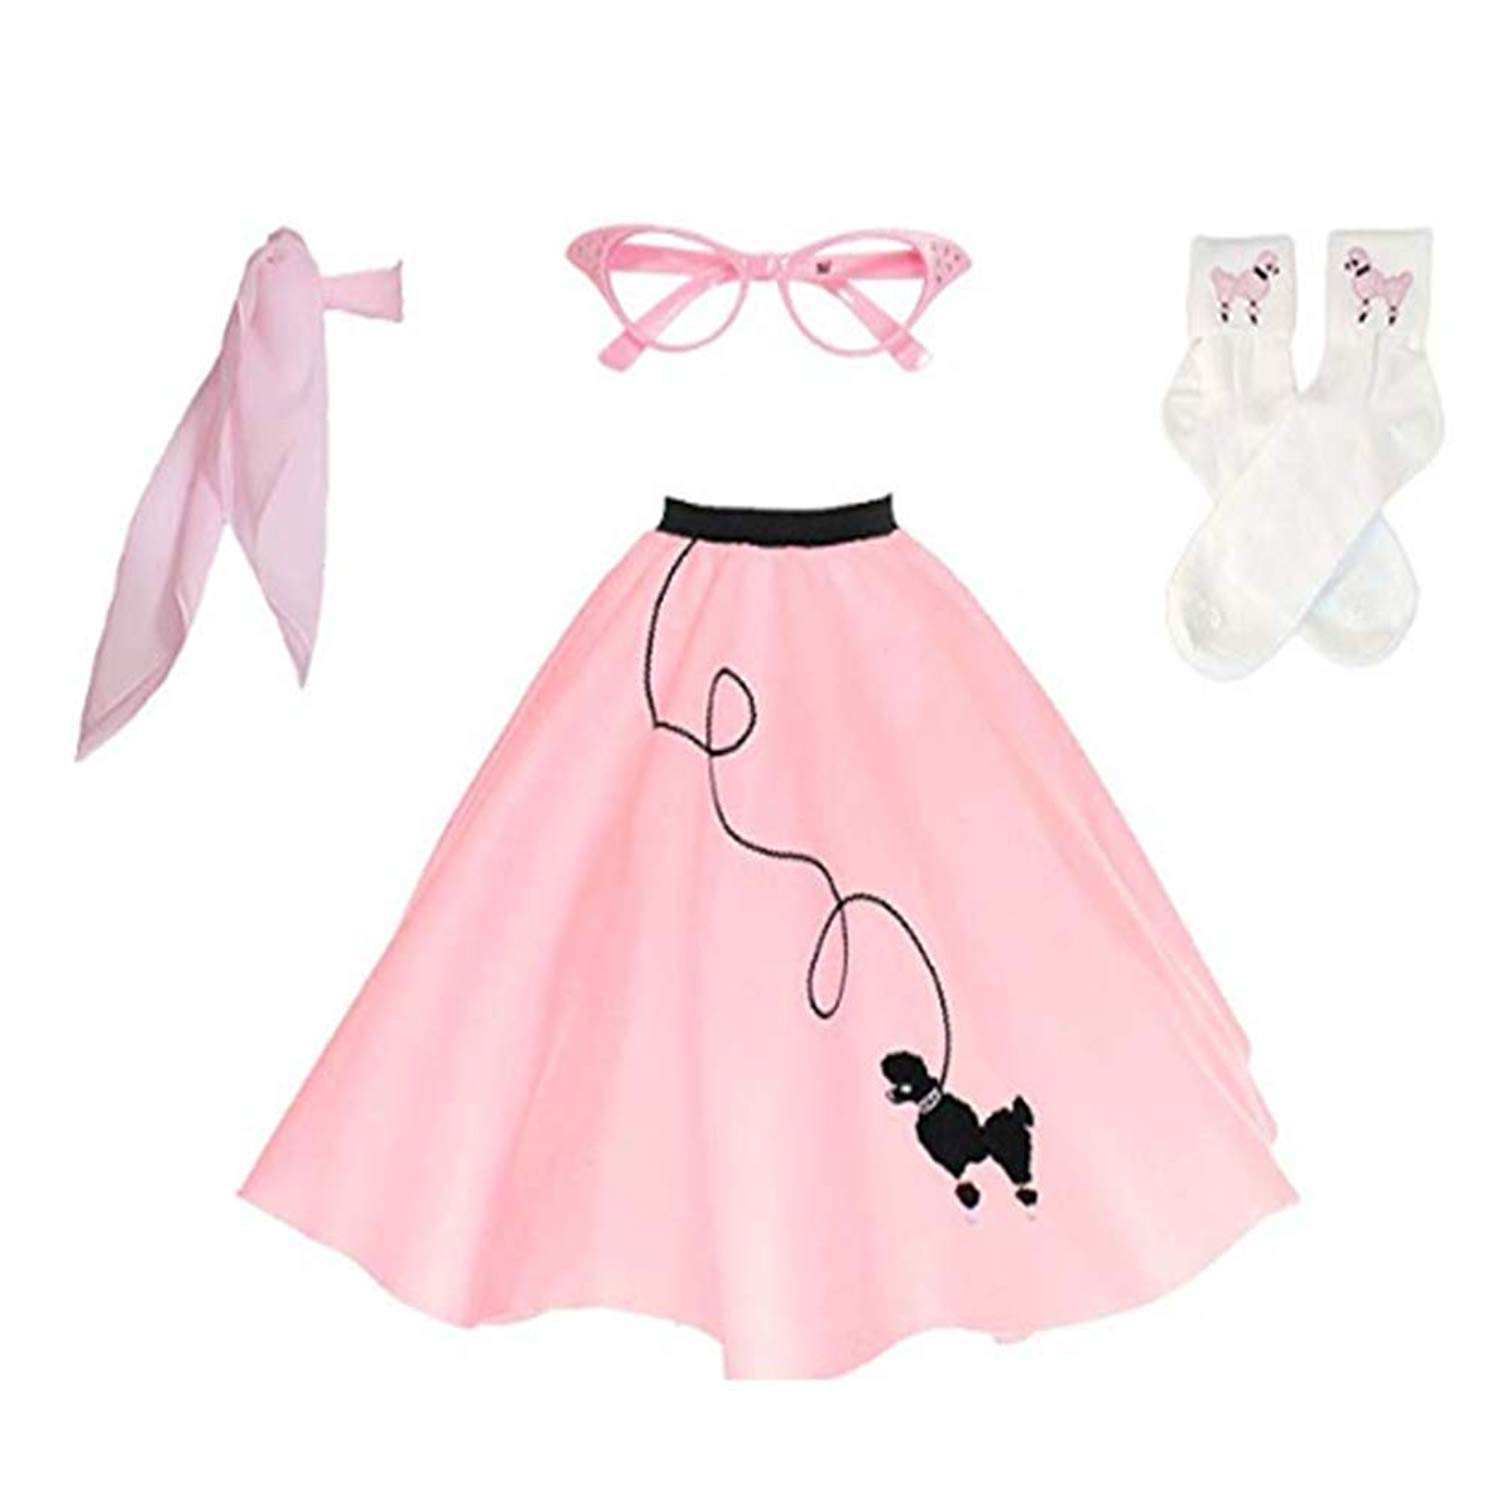 Paniclub Women¡s 1950s Poodle Skirt Scarf Sock Costume Set,Pink,Small